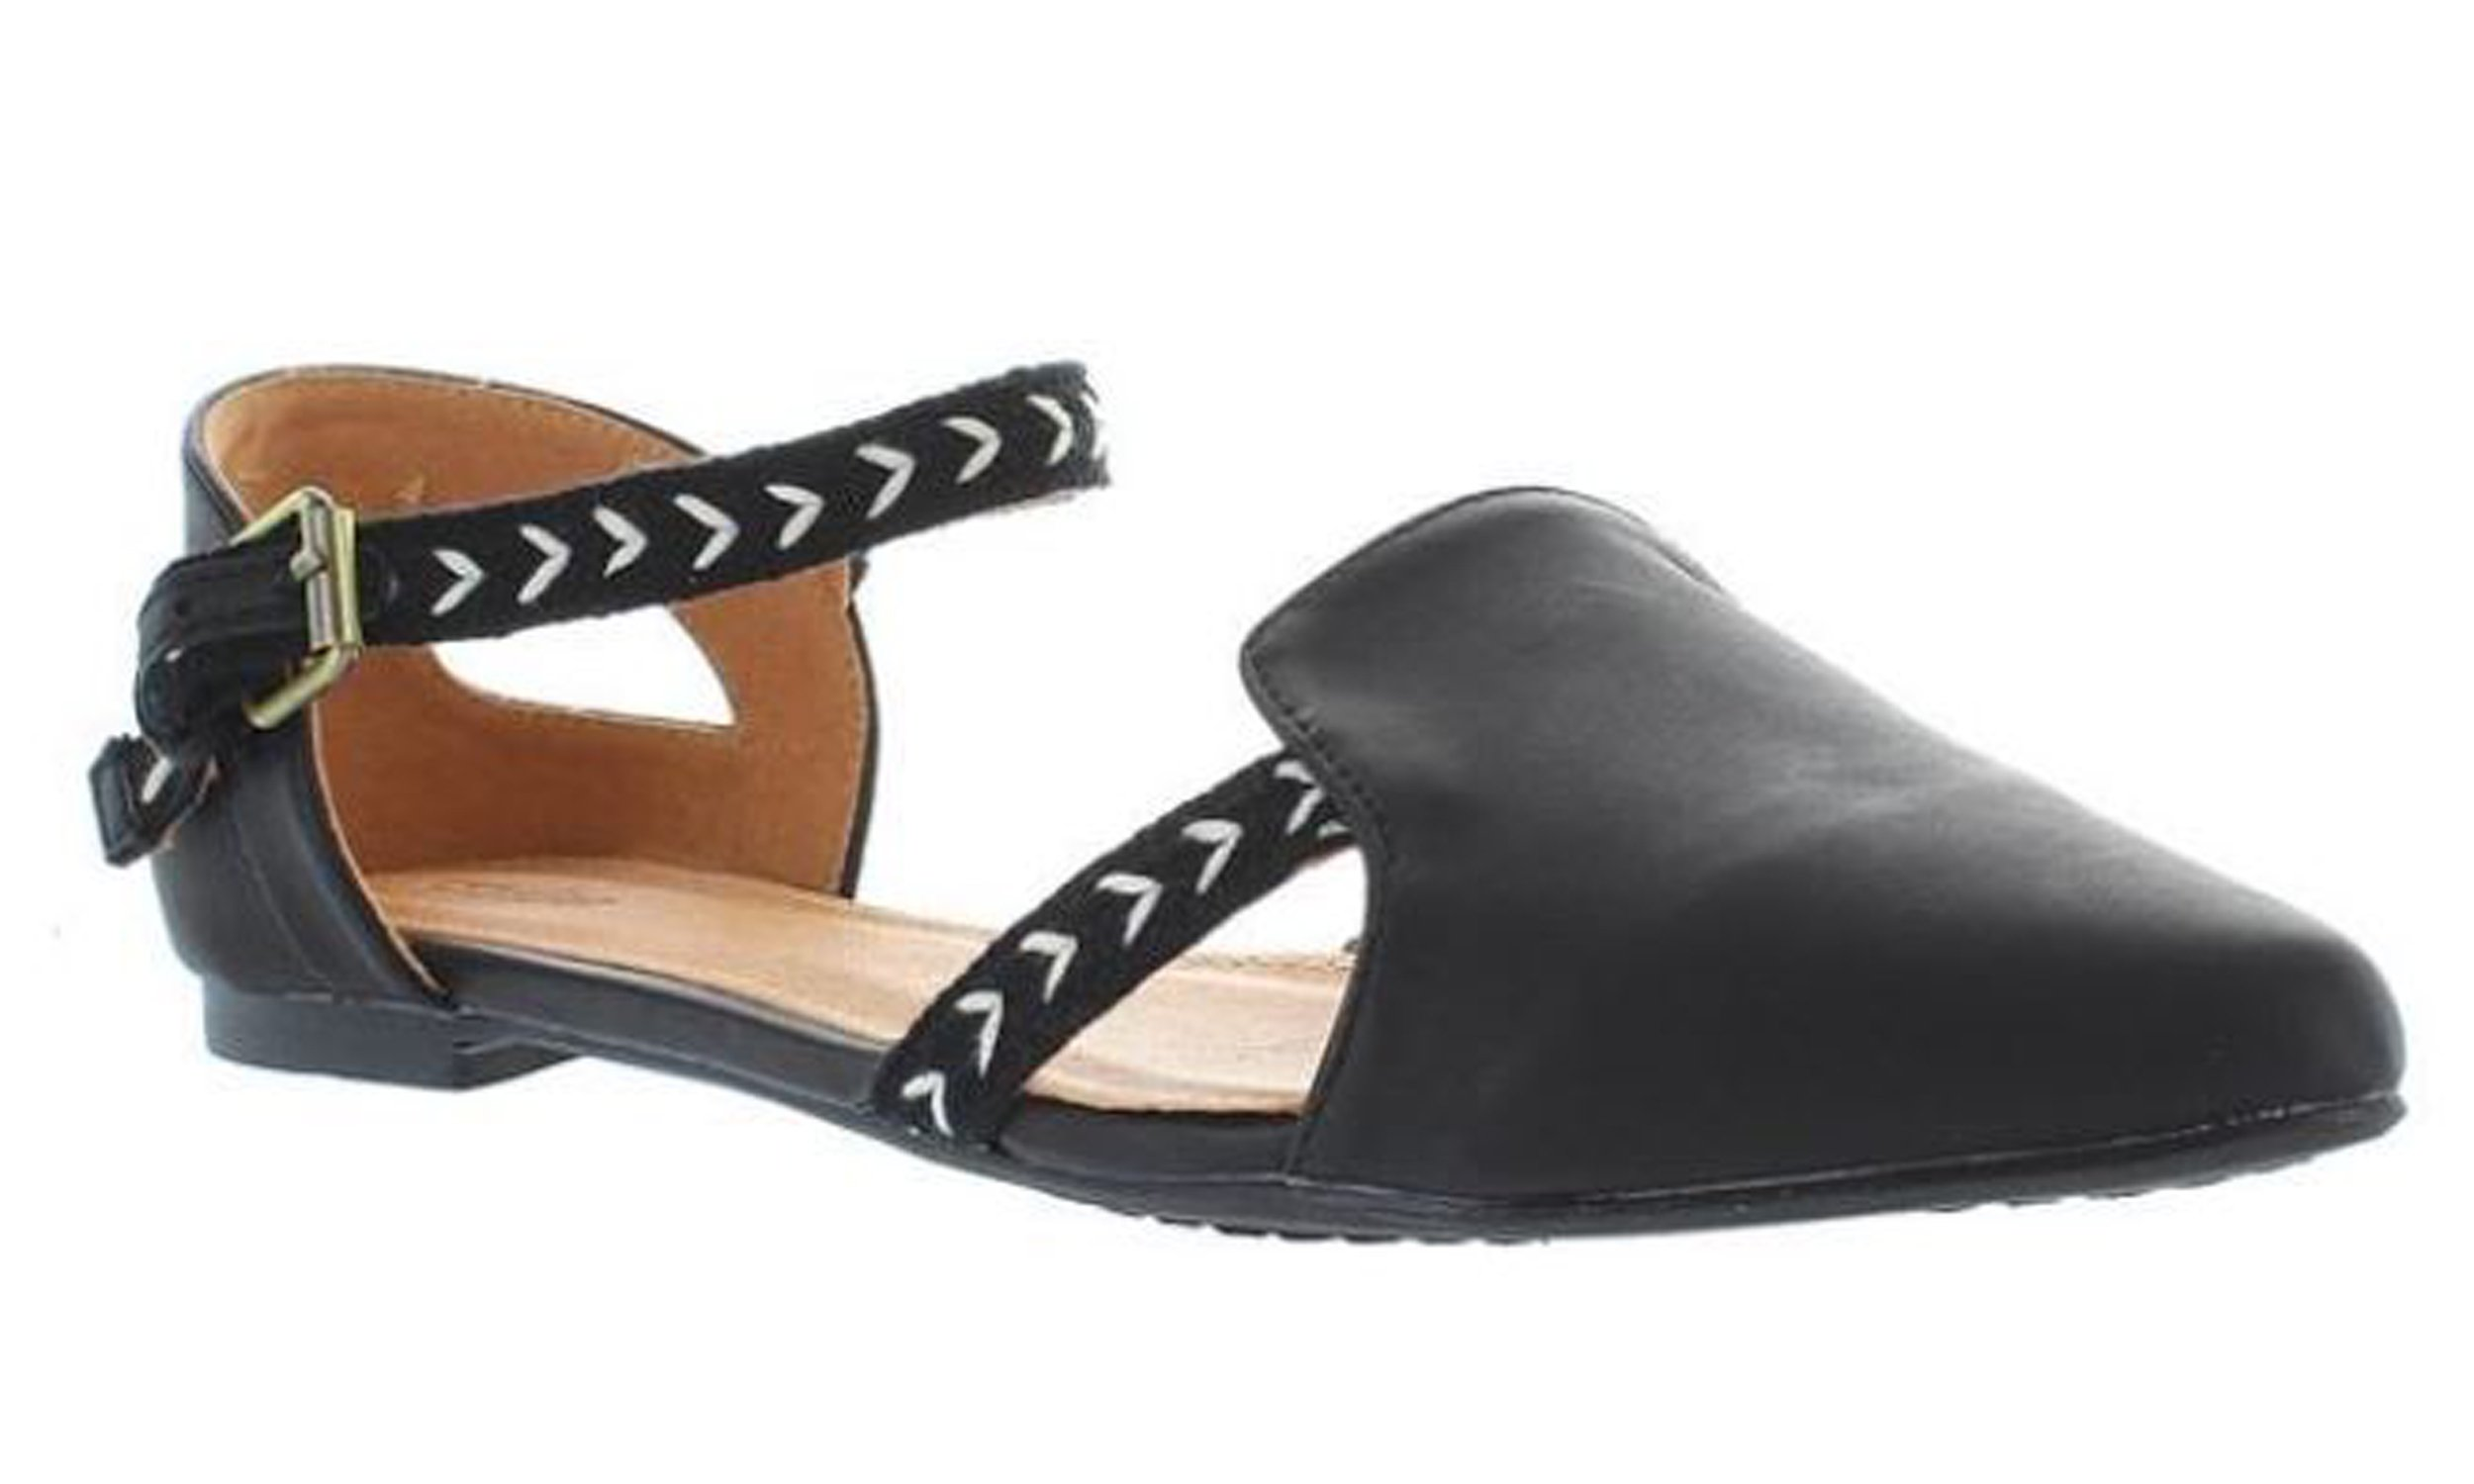 Extra Fine Sugar oz - Black/Tribal Print Mary Jane Flat - Size: 9 by Extra Fine Sugar (Image #1)